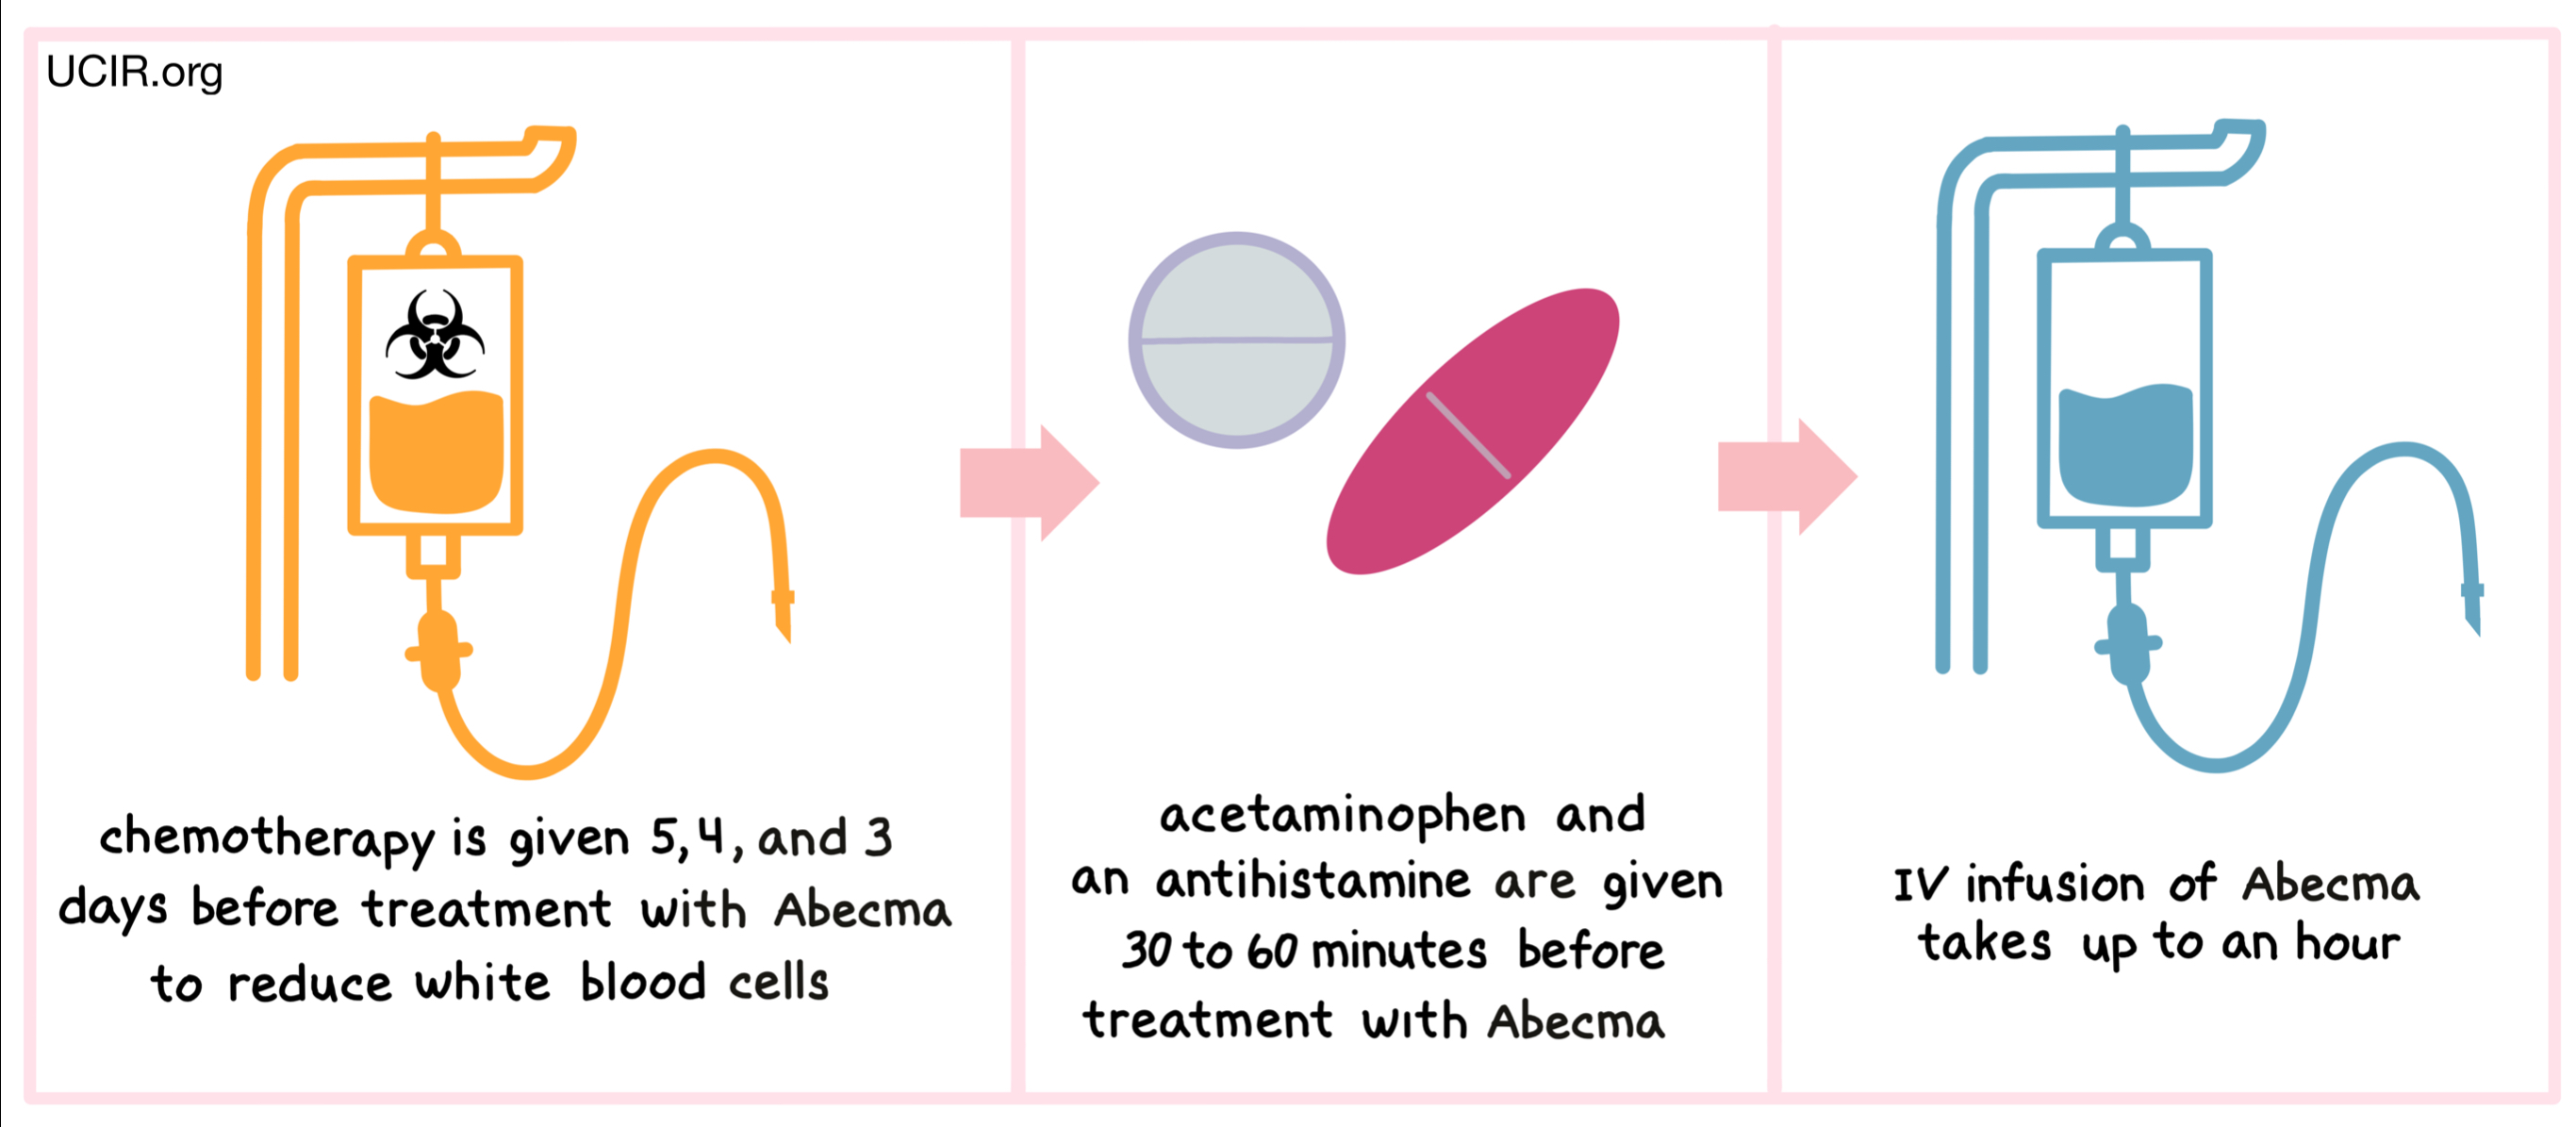 Timeline showing how Abecma is administered